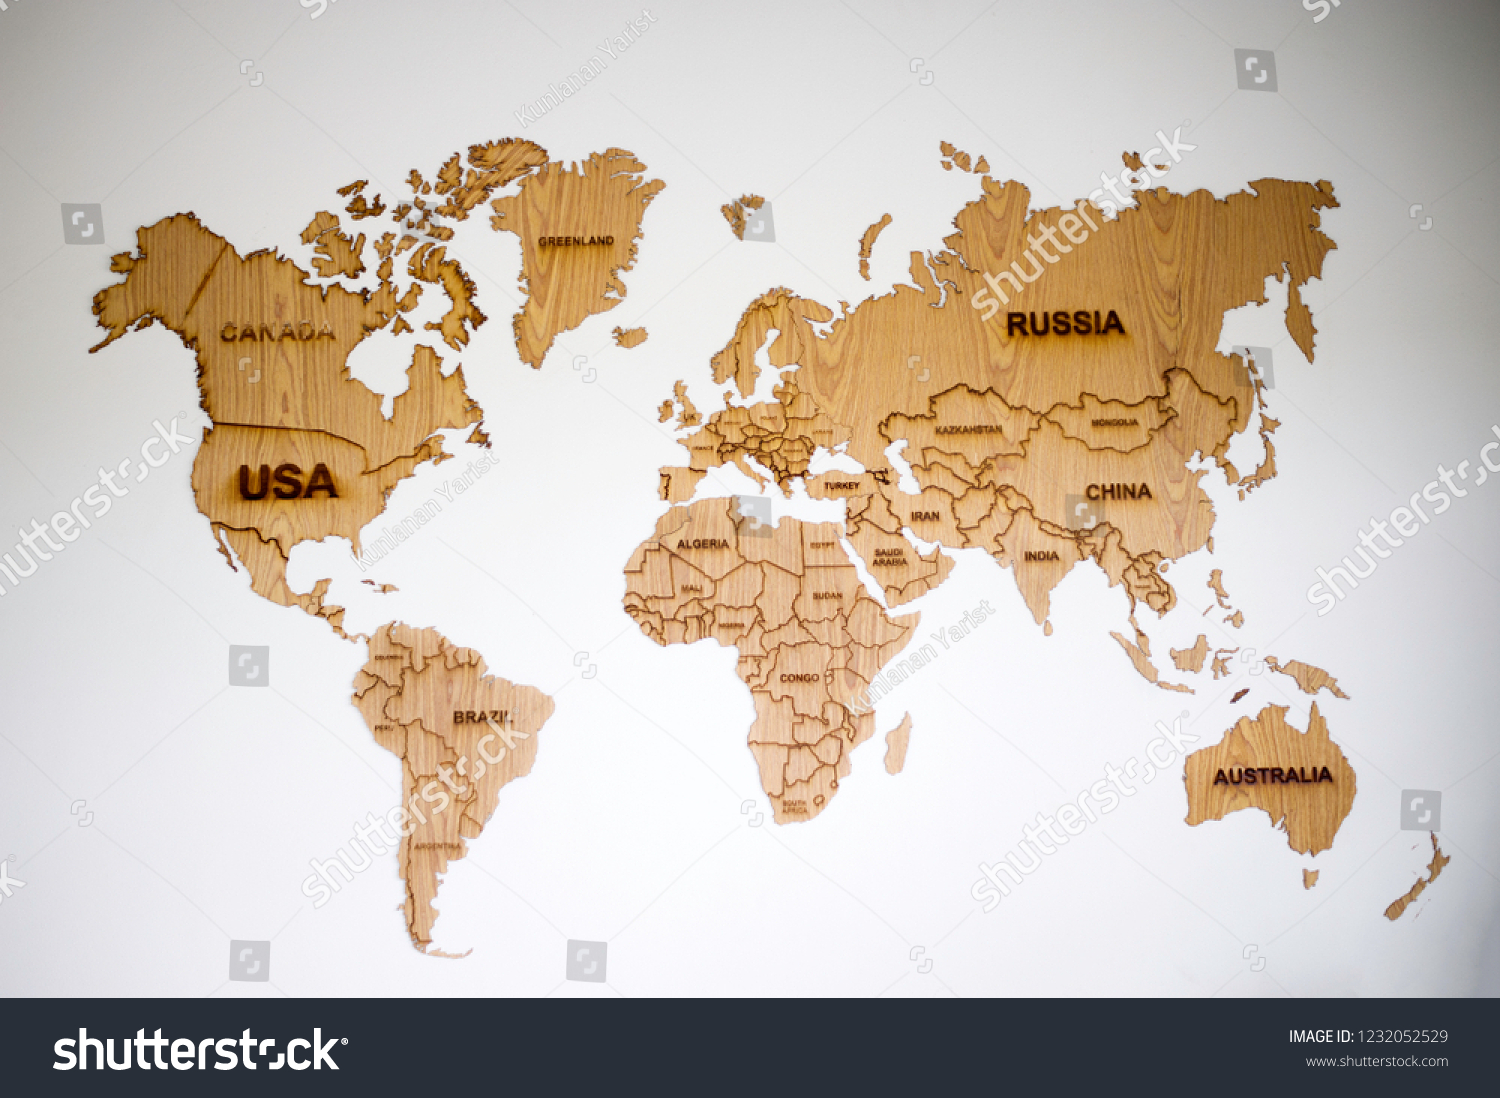 Countries Bordering China Map.World Map Countries Borders Abstract World Stock Photo Edit Now